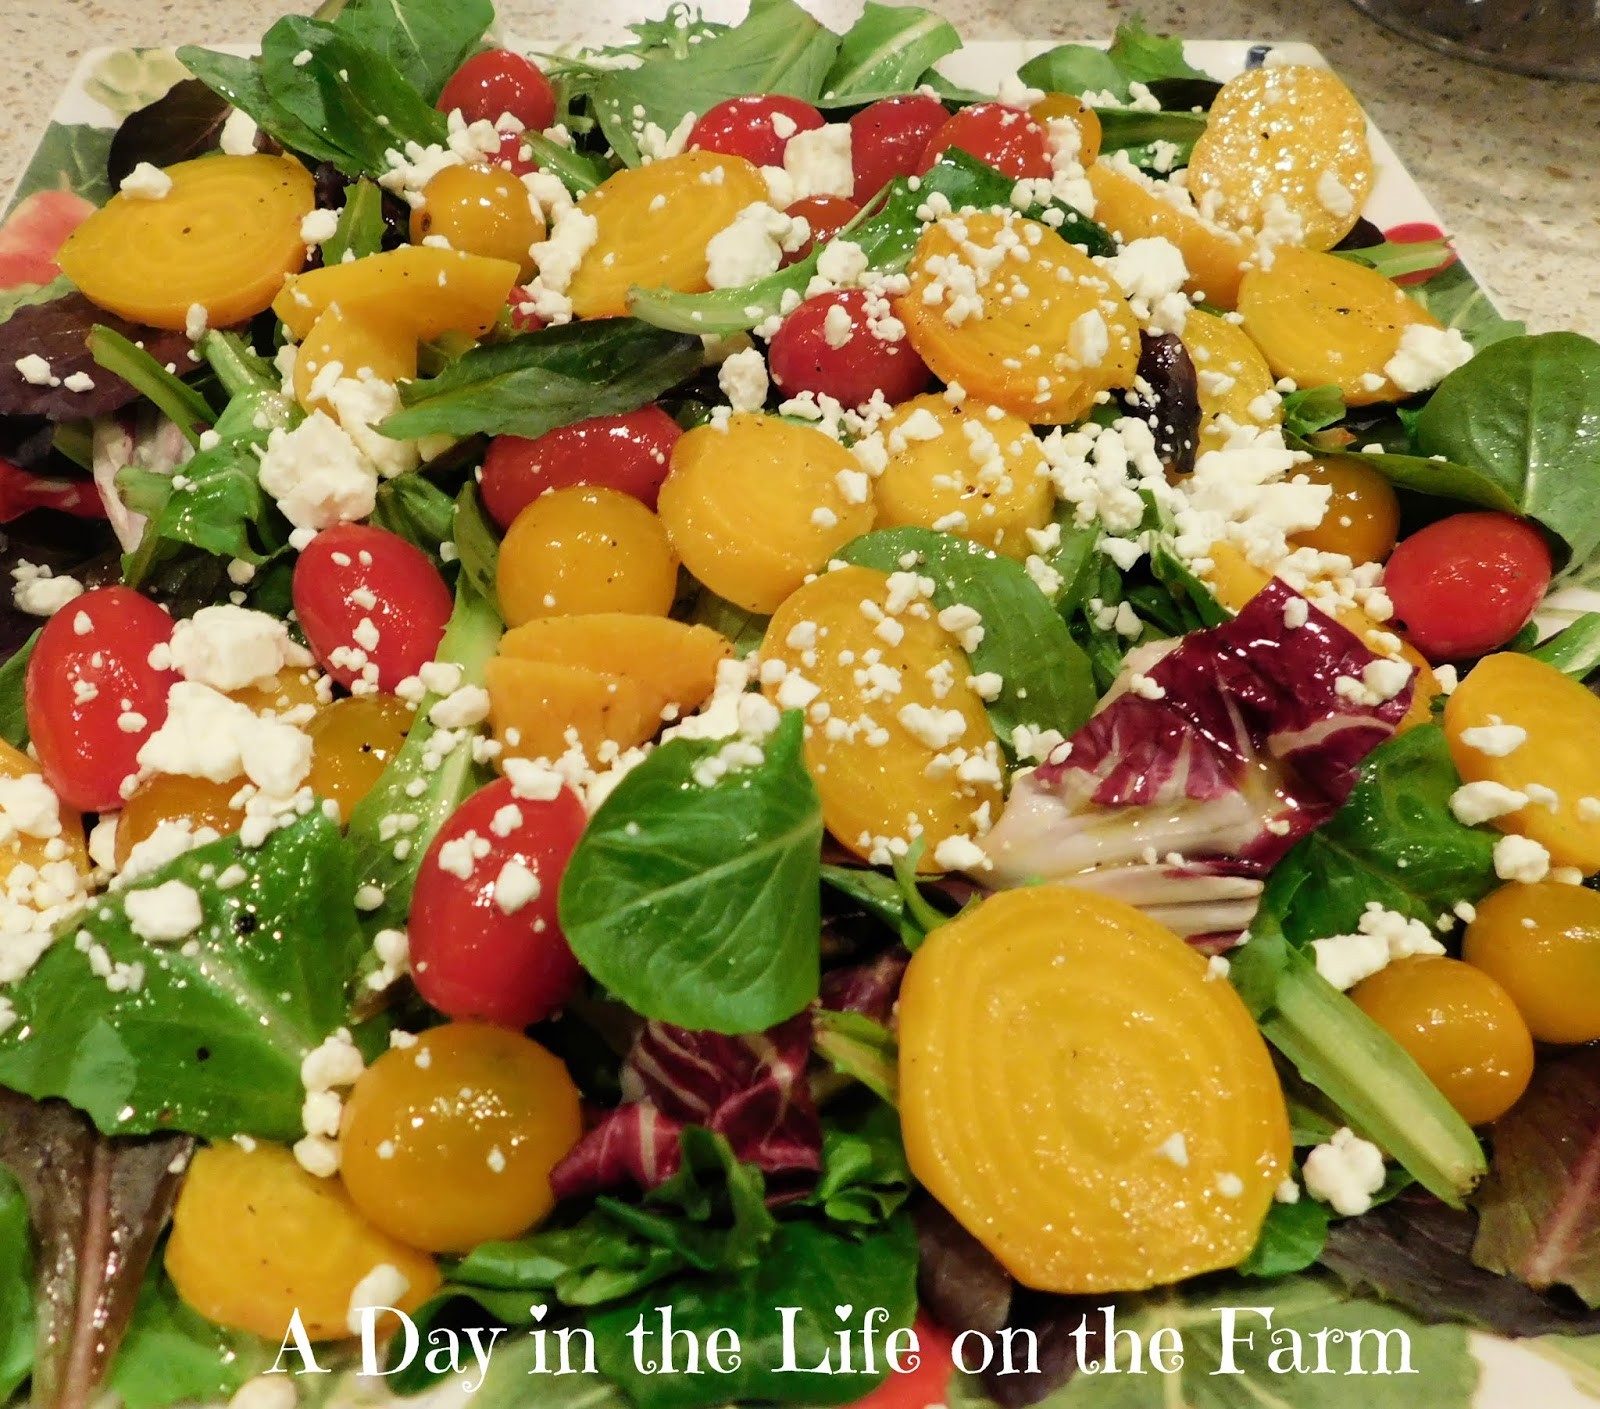 MIxed Greens with Roasted Golden Beets and Lemon Vinaigrette